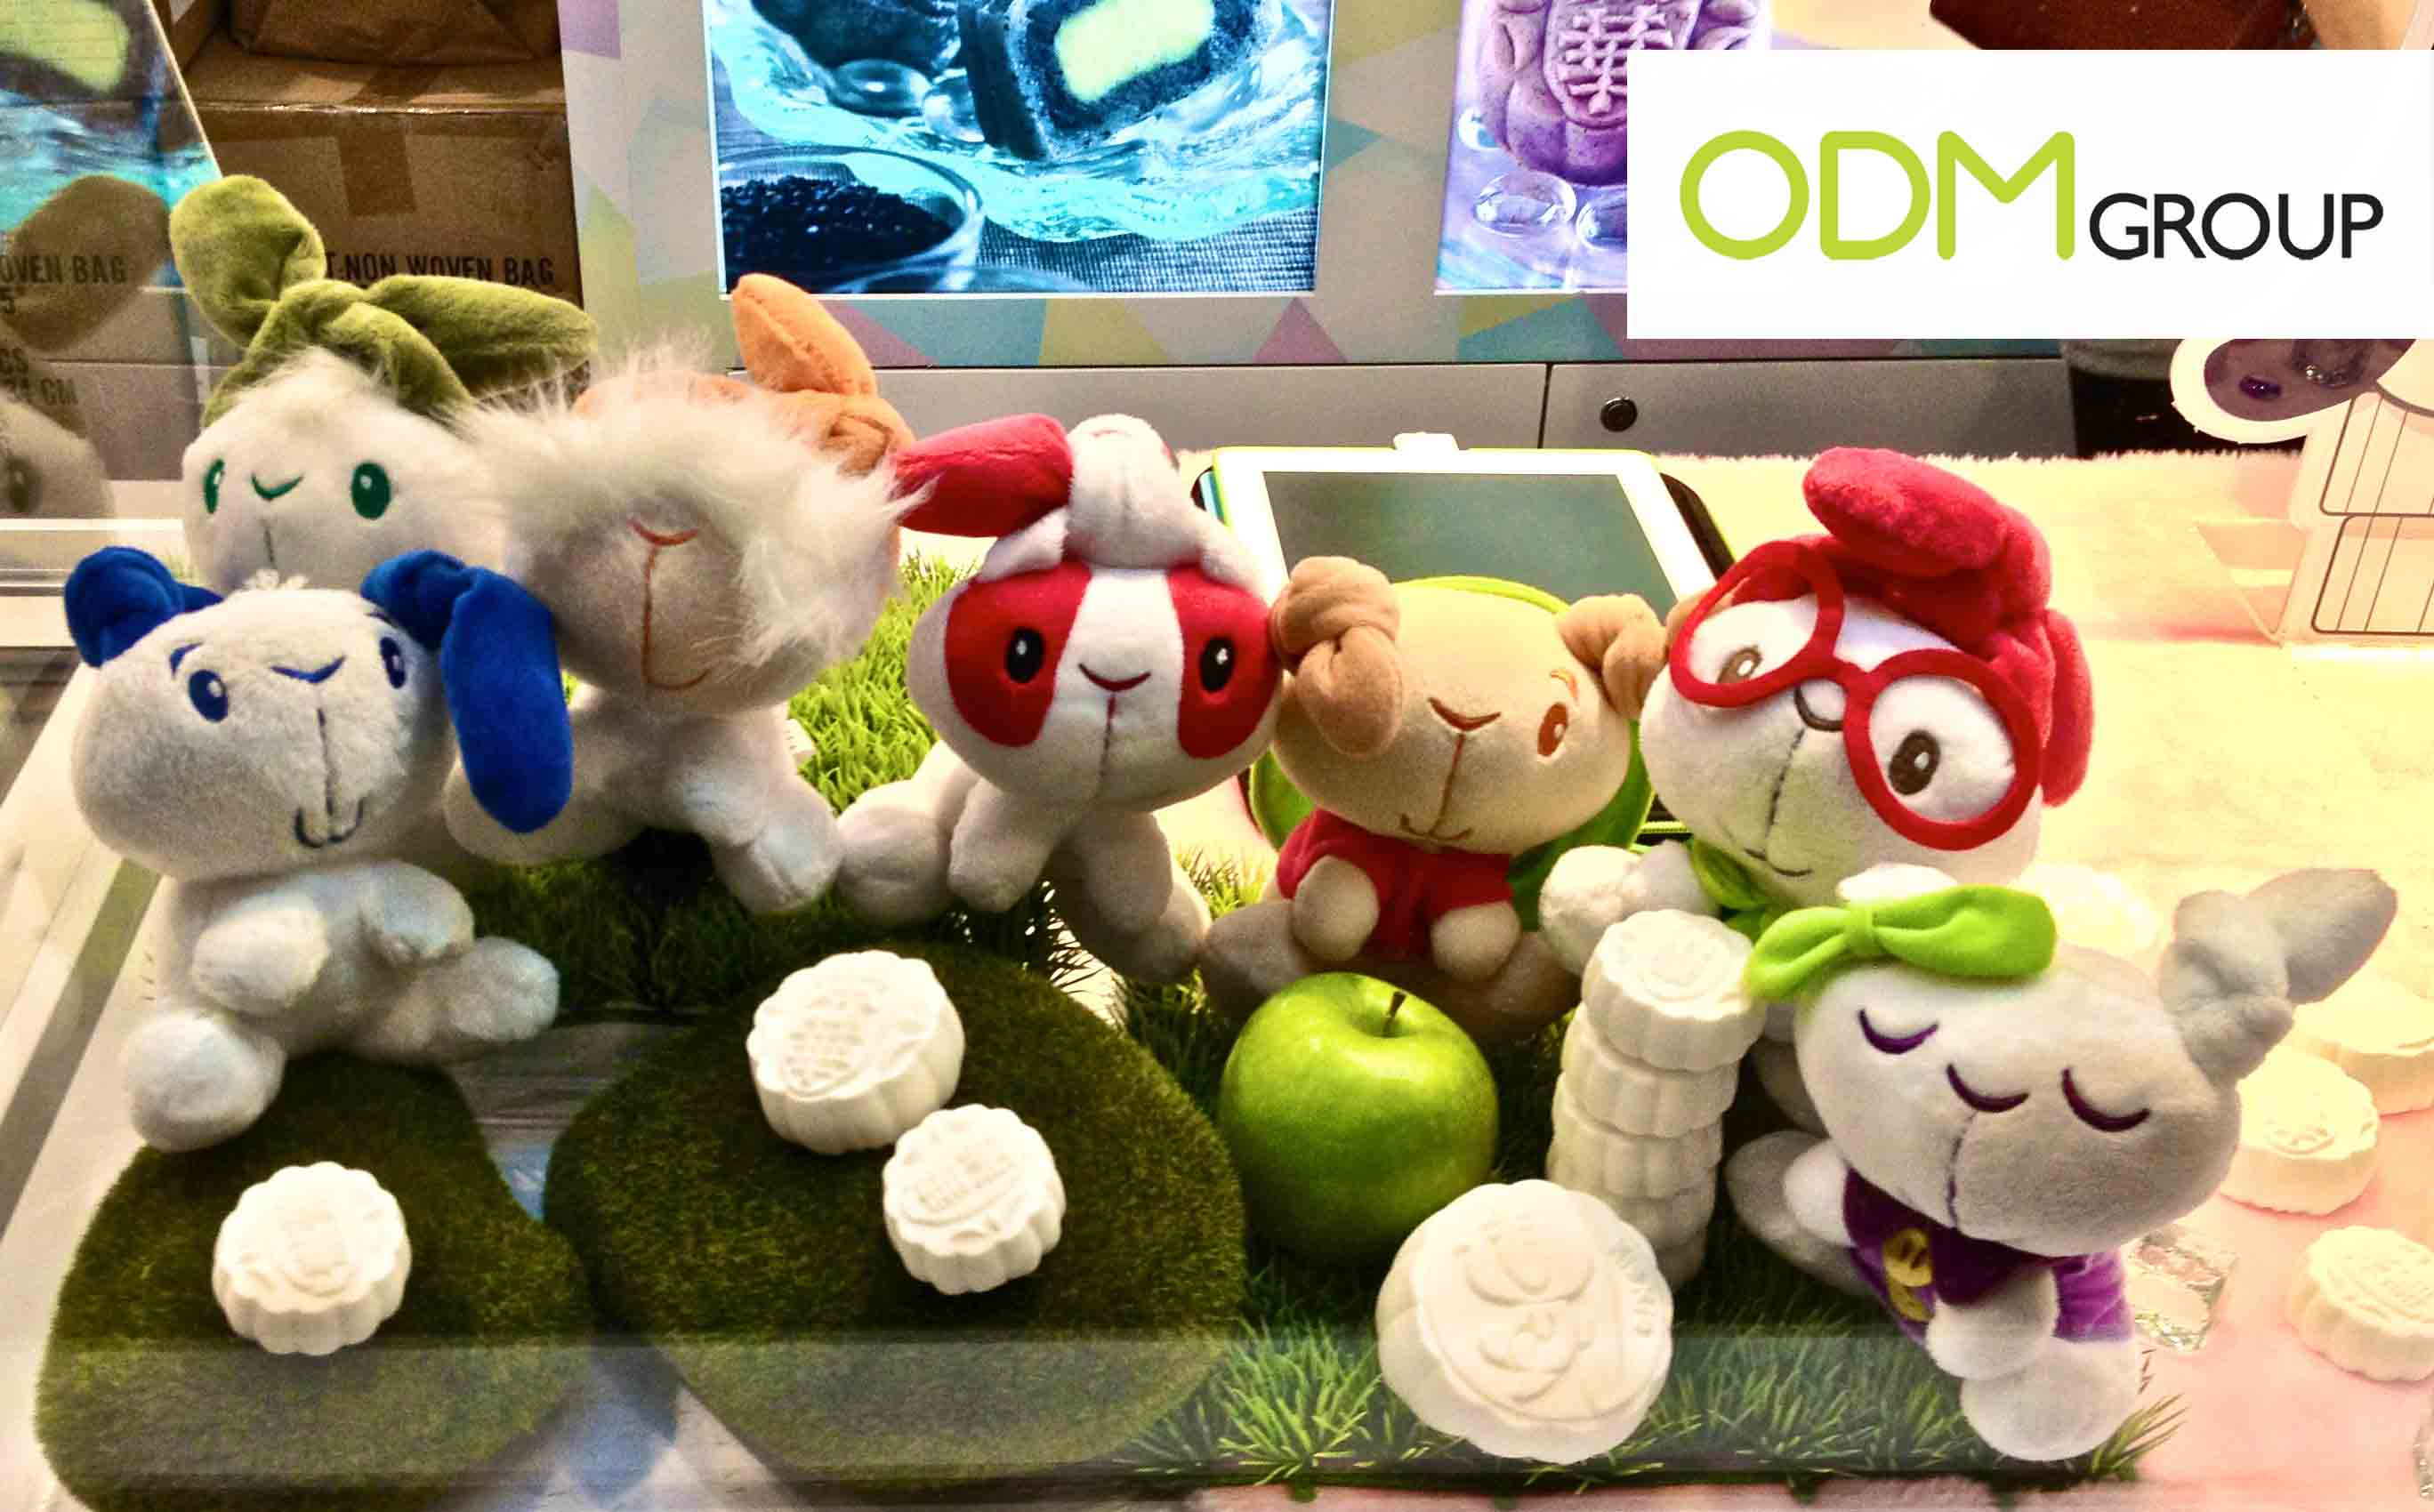 Promotional Product HK - Plushes at the Food Expo